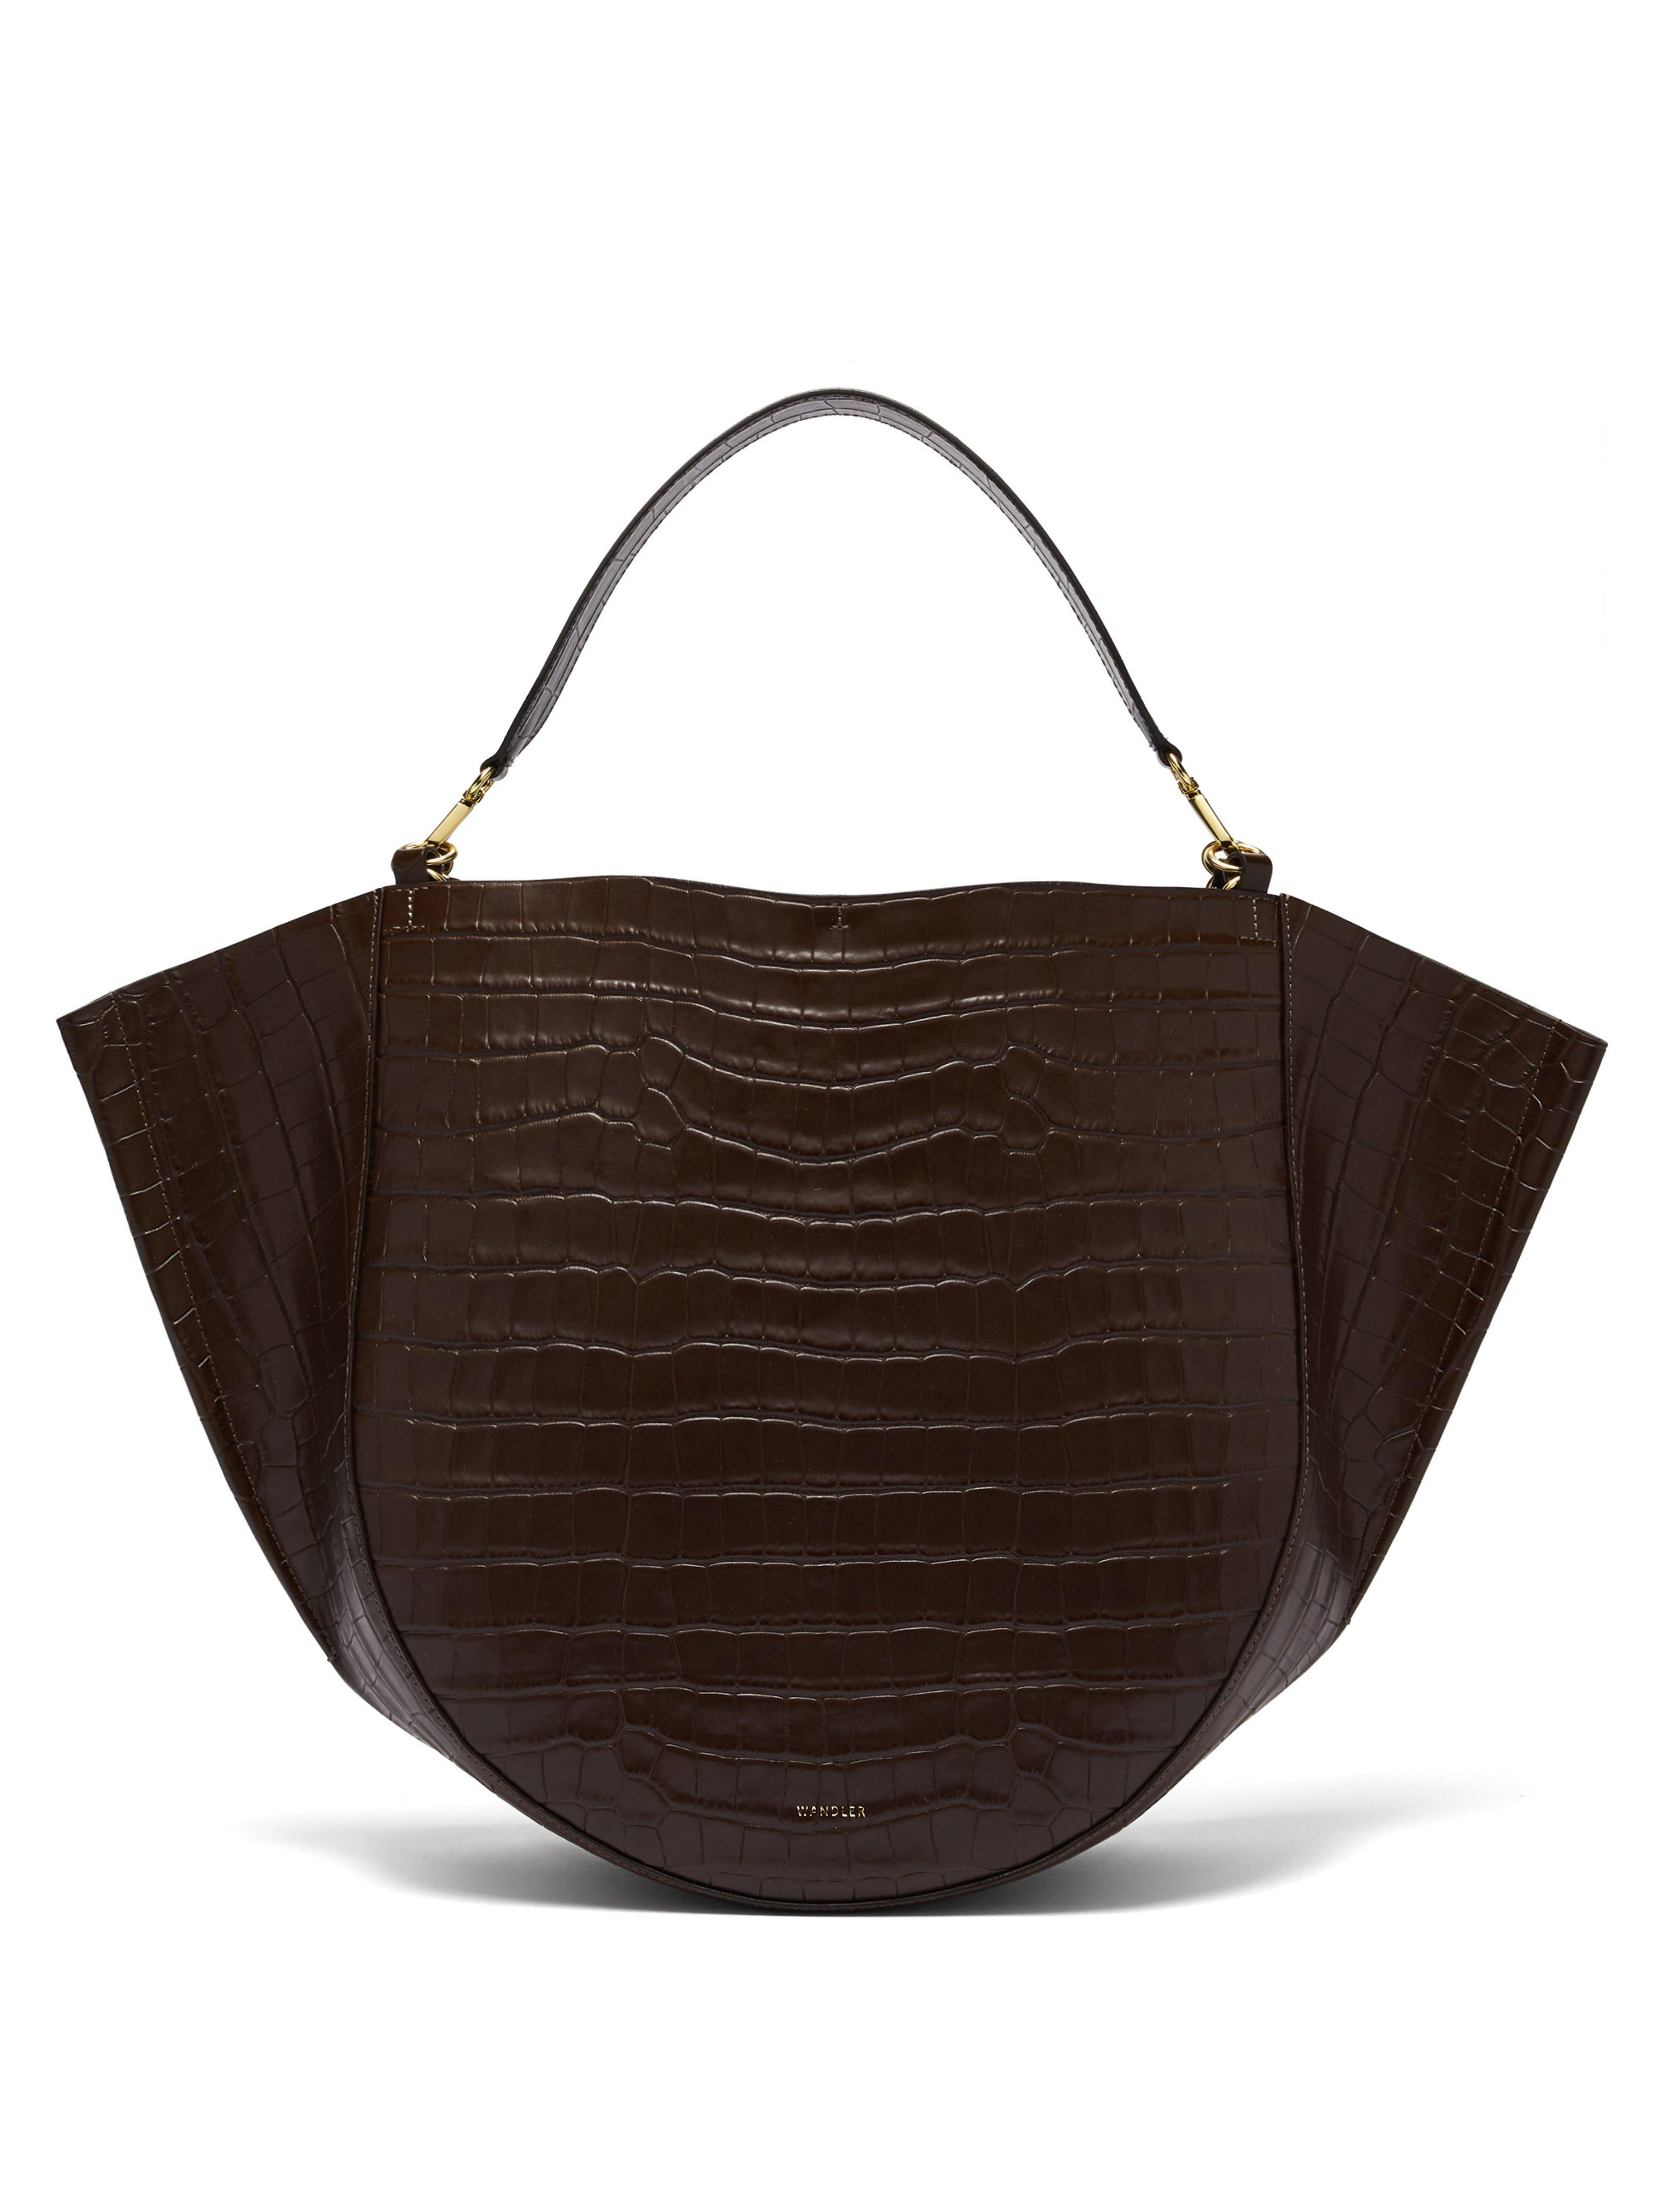 Wandler Mia Bag Crocodile Lyst In Effect Brown Leather Tote R4y1RqZ